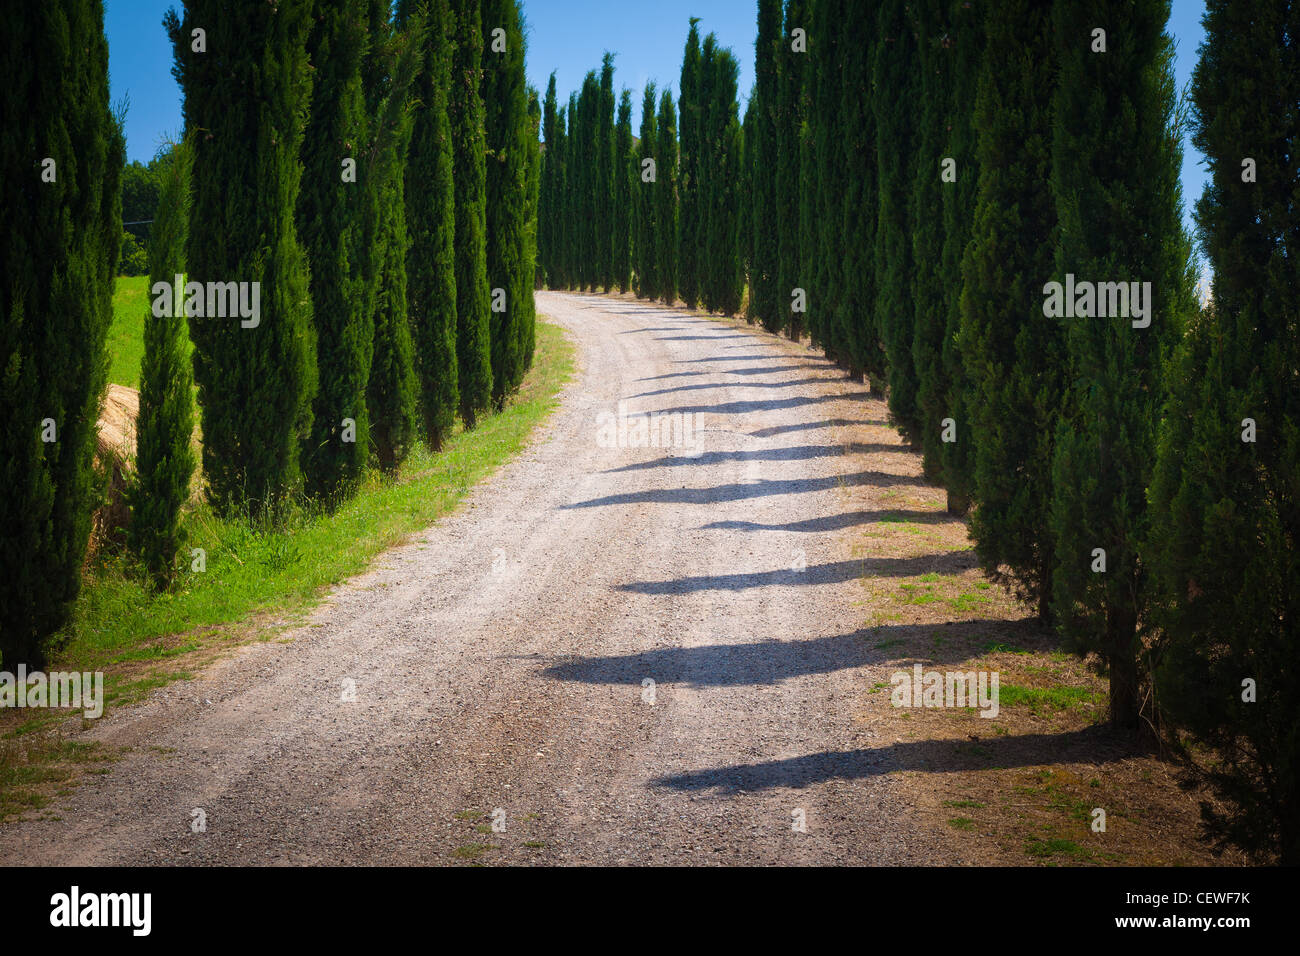 Road lined with cypresses in the Tuscan countryside Stock Photo